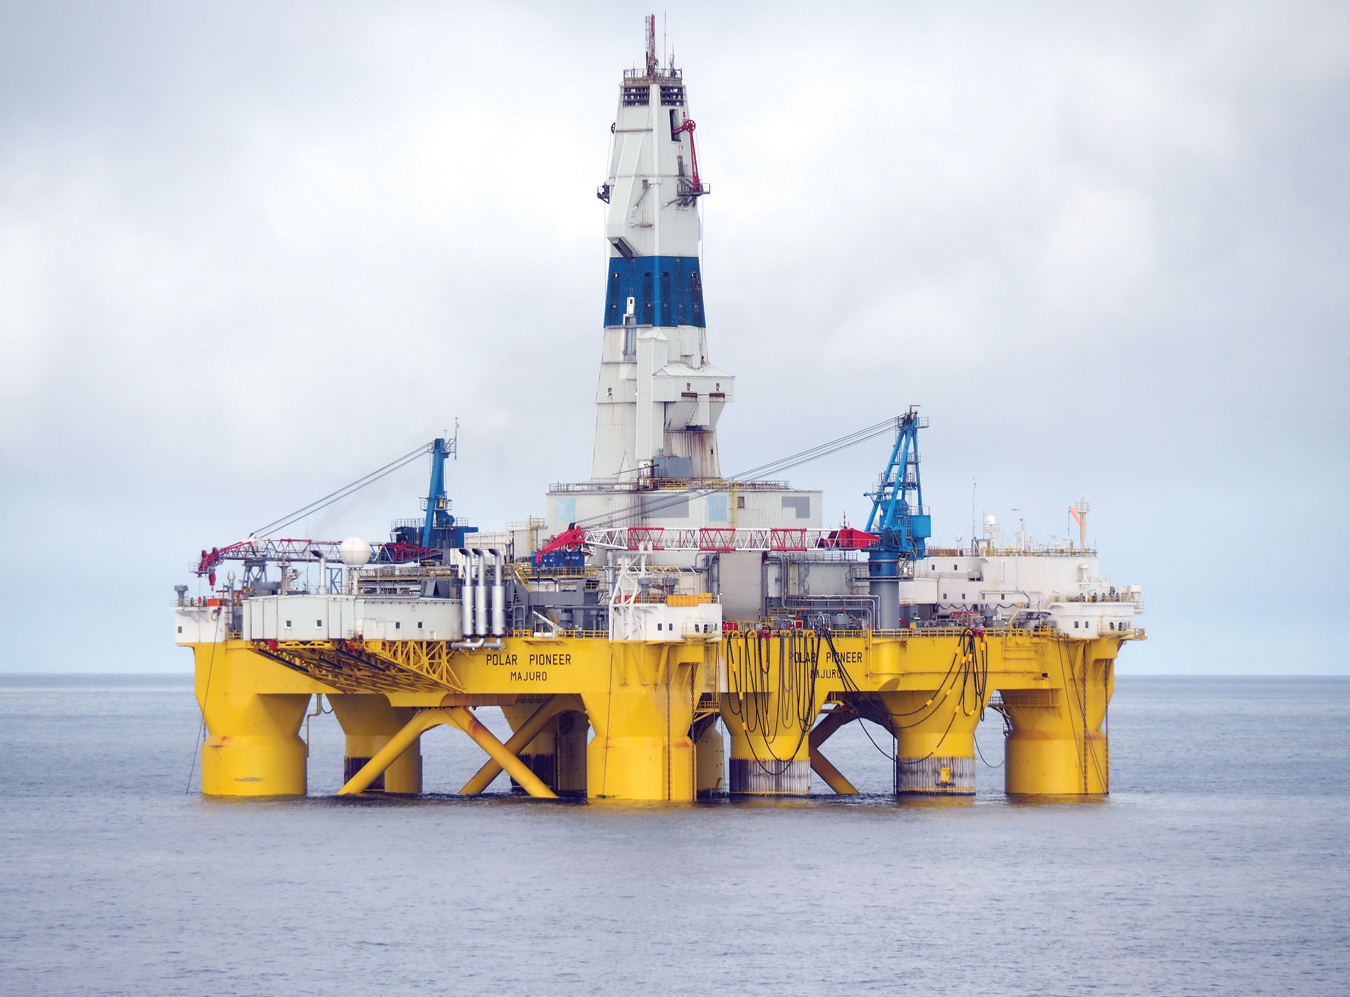 drilling rig business plan The indsutry's most trusted partner in us land, international and offshore drilling productivity we own and operate the largest land fleet of ac drive drilling rigs.